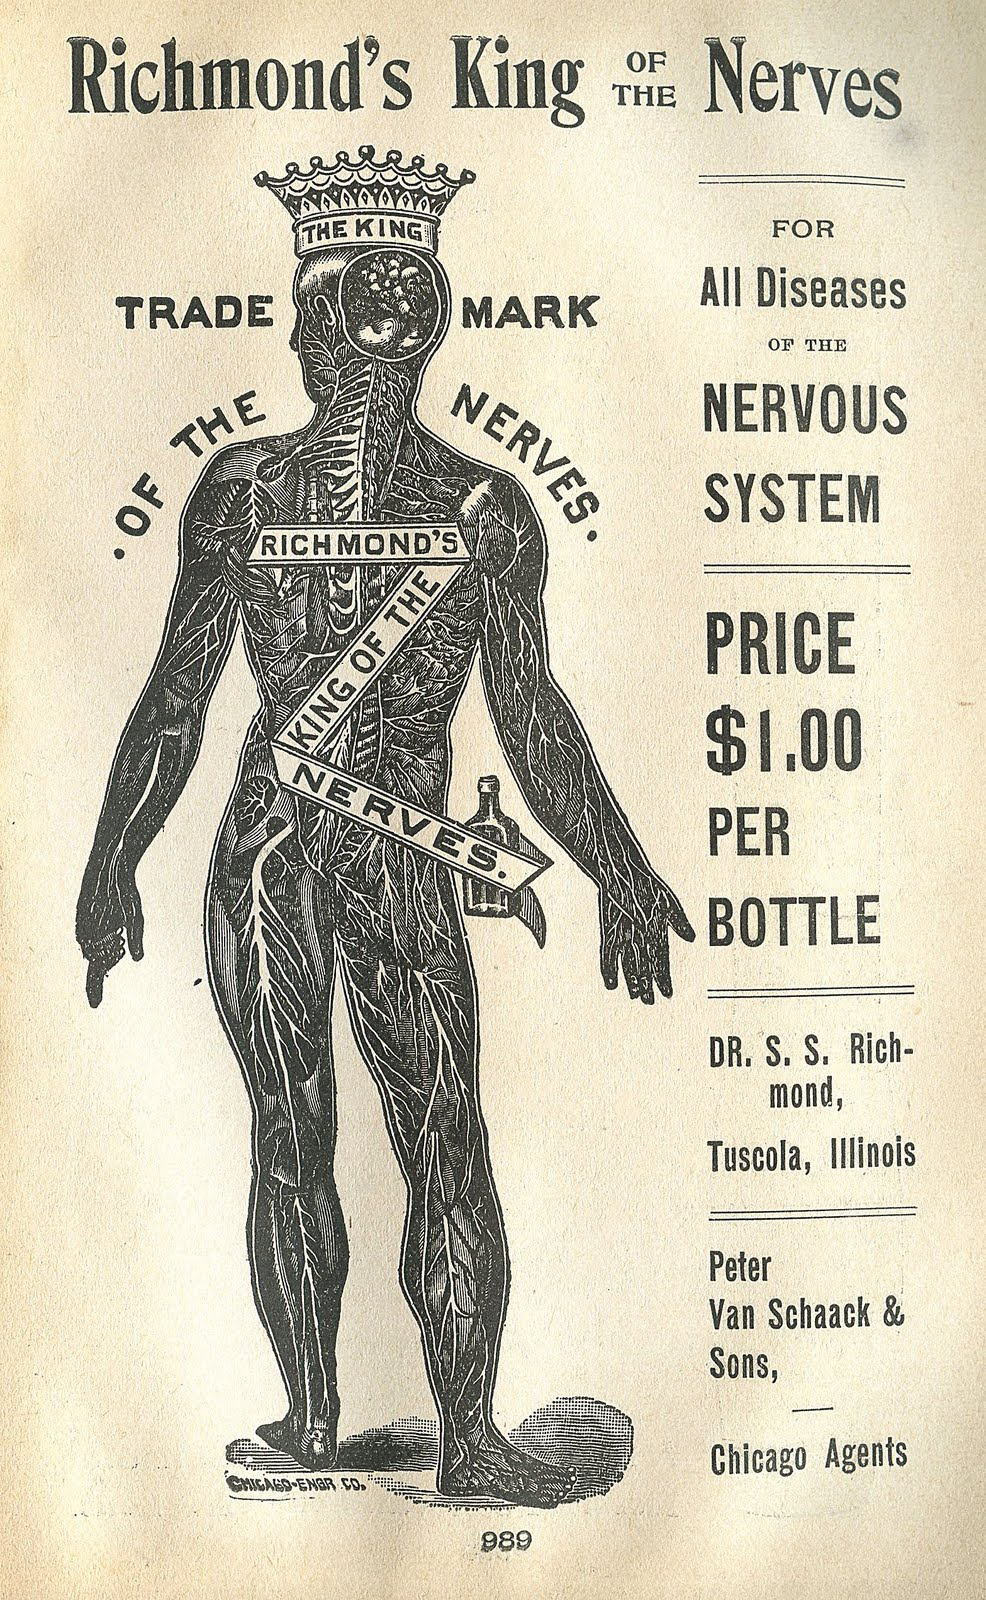 Strange Medical Advertising Image - King of the Nerves - The ...